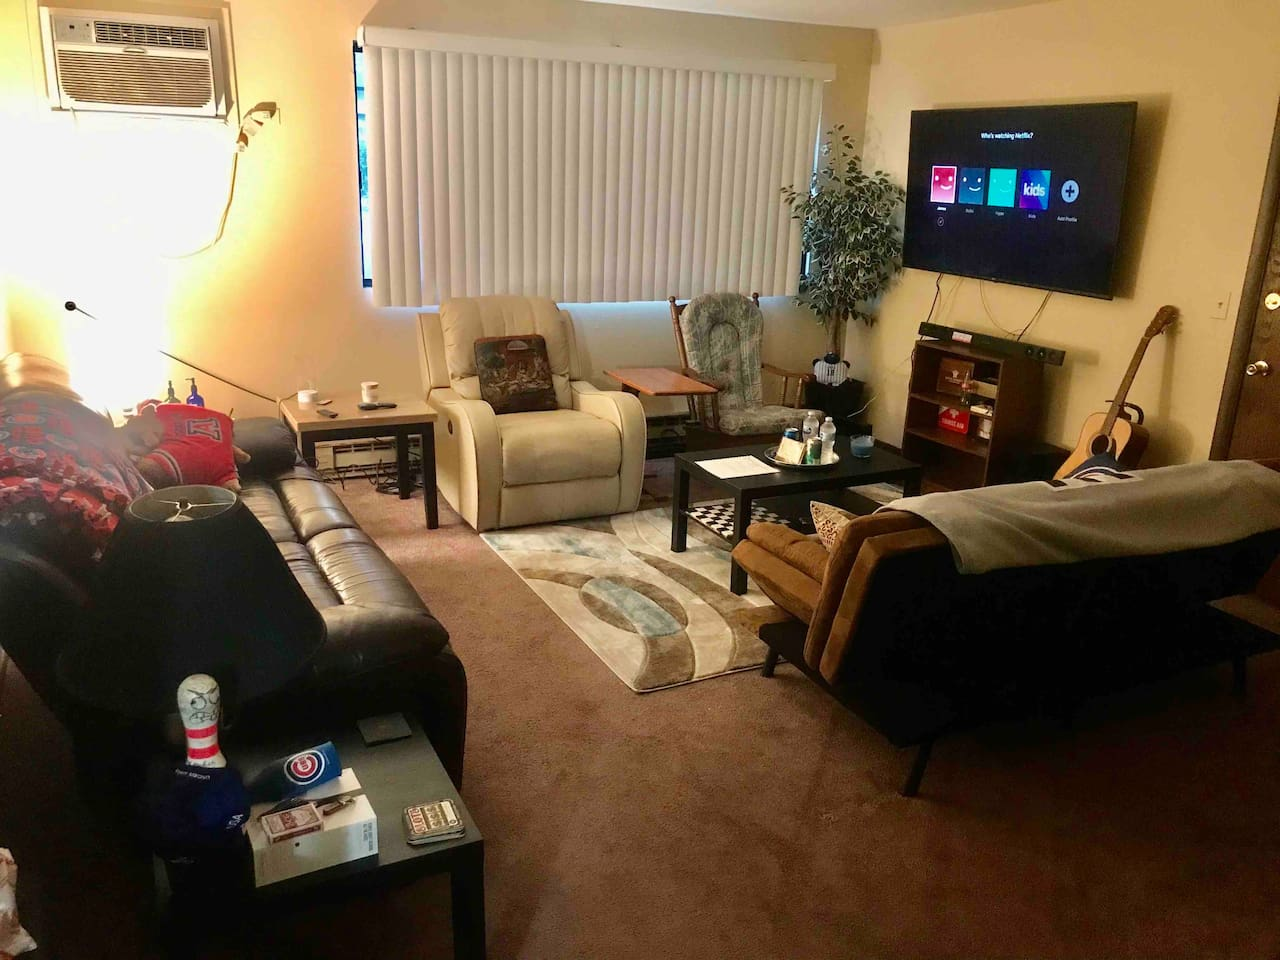 Living room view with 2 side table lamps, welcome tray filled with snacks and beverages, and a total of 6 seating areas with 3 reclining seats!